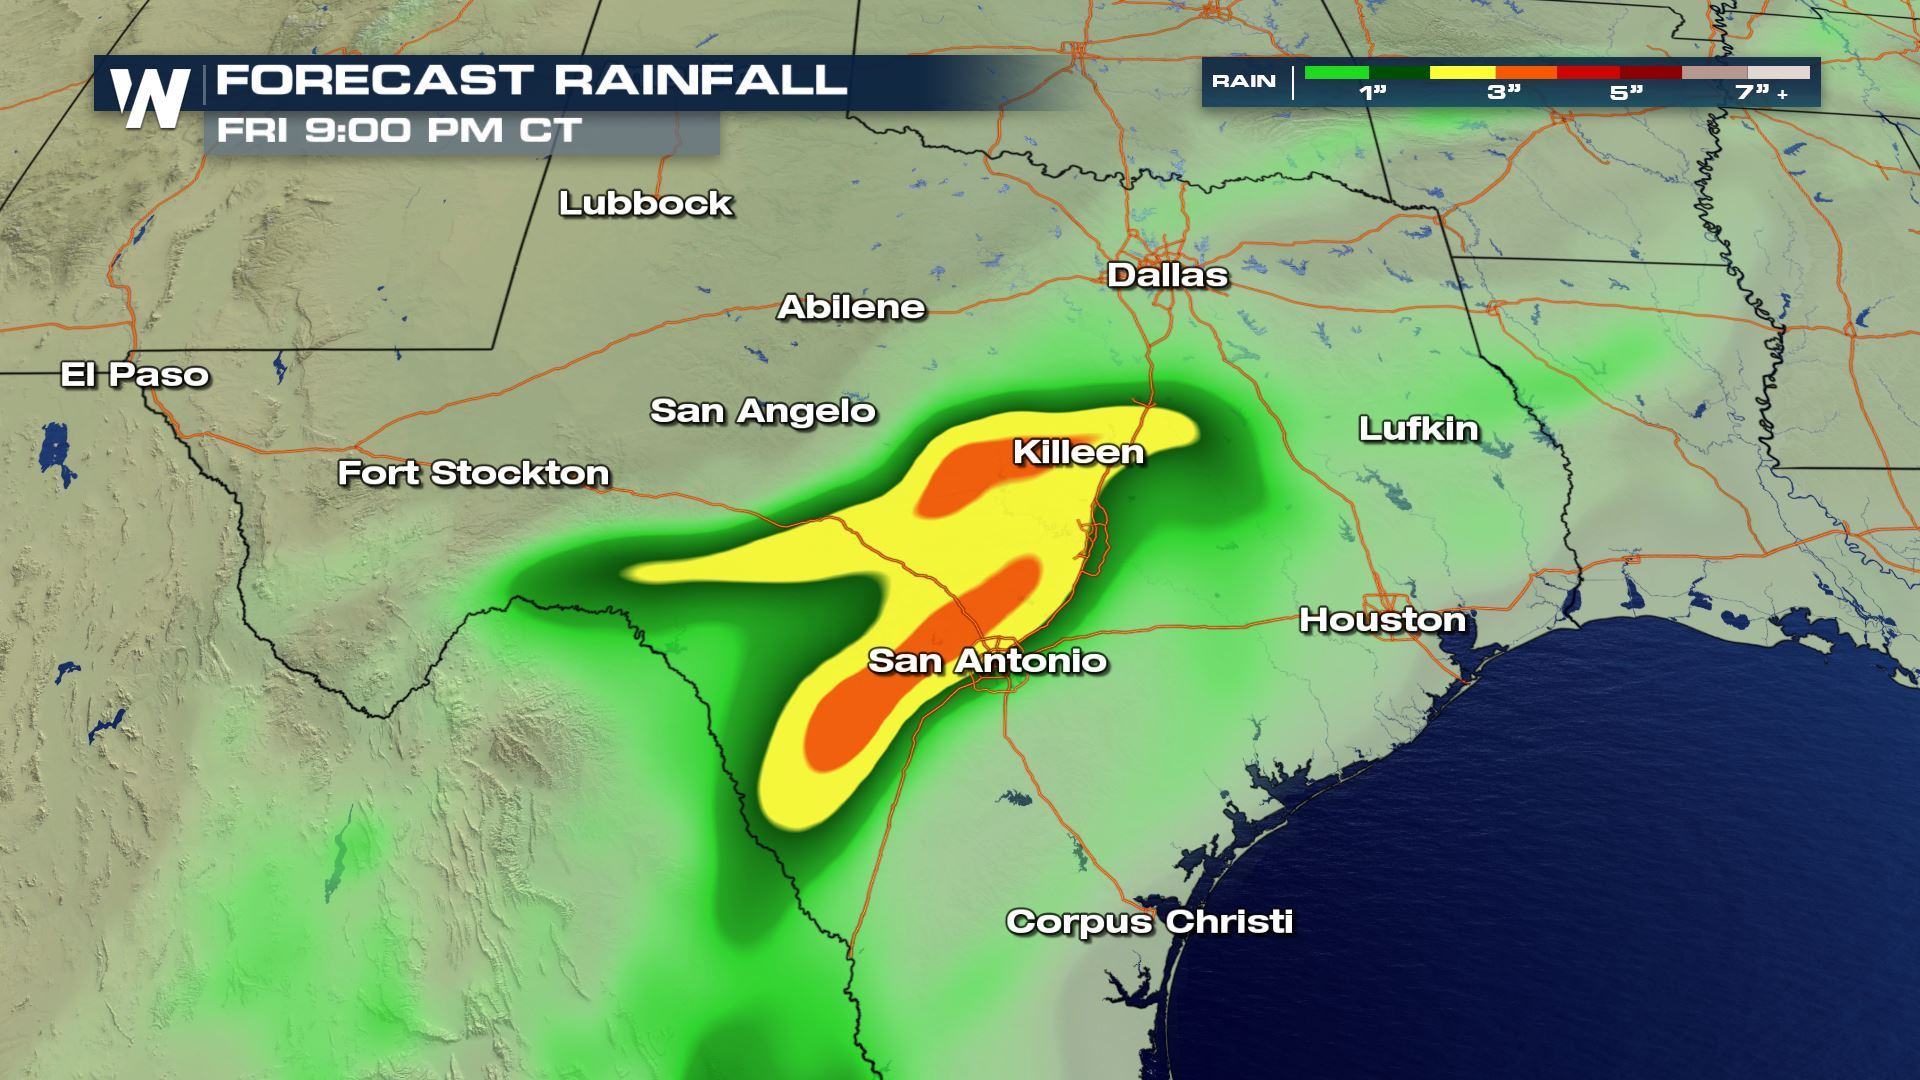 Heavy Rain In The Forecast Today for Texas - WeatherNation